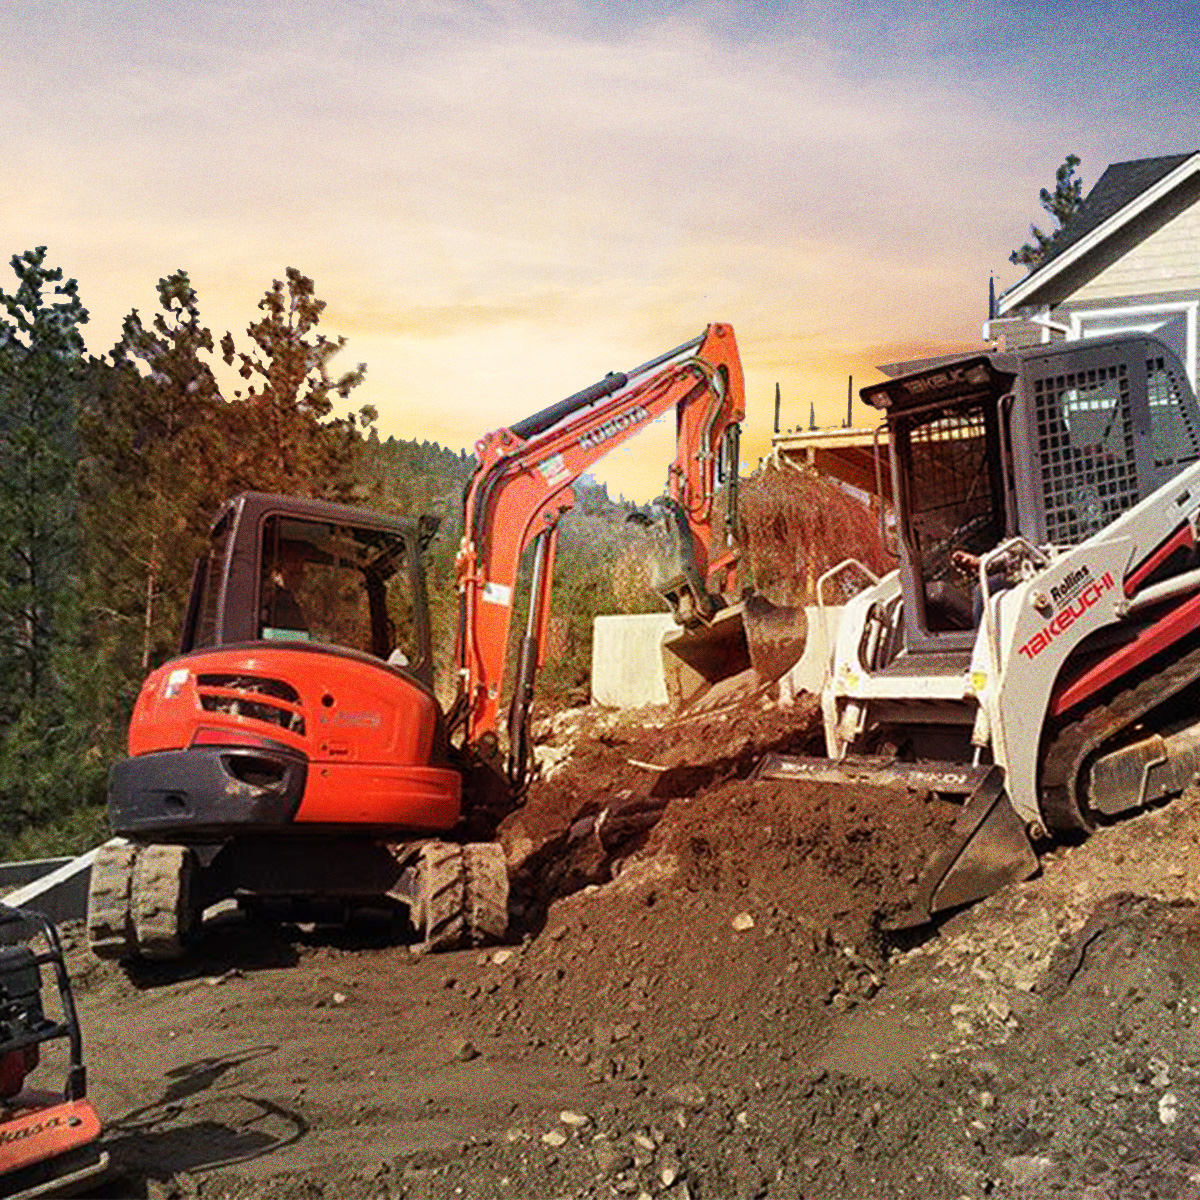 Skid-steer and backhoe working on a property Kelowna, BC.